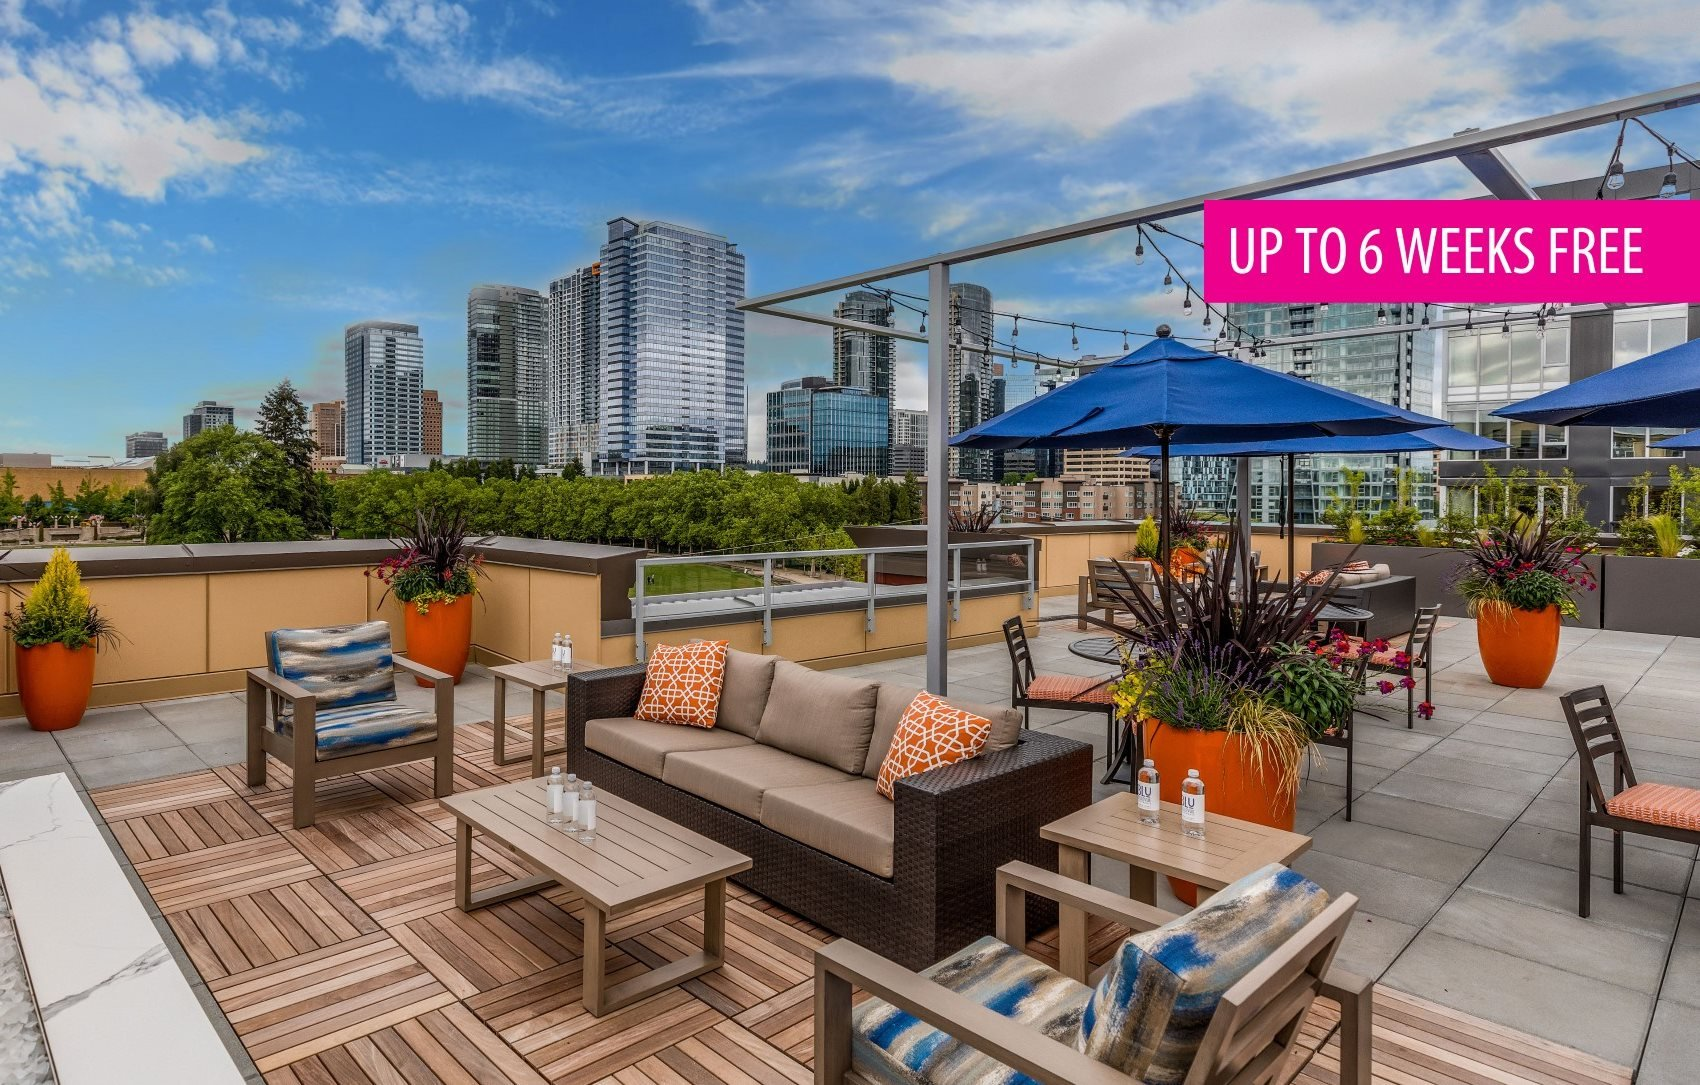 BLU Bellevue Apartments Rooftop Courtyard with 6 Weeks Free Banner